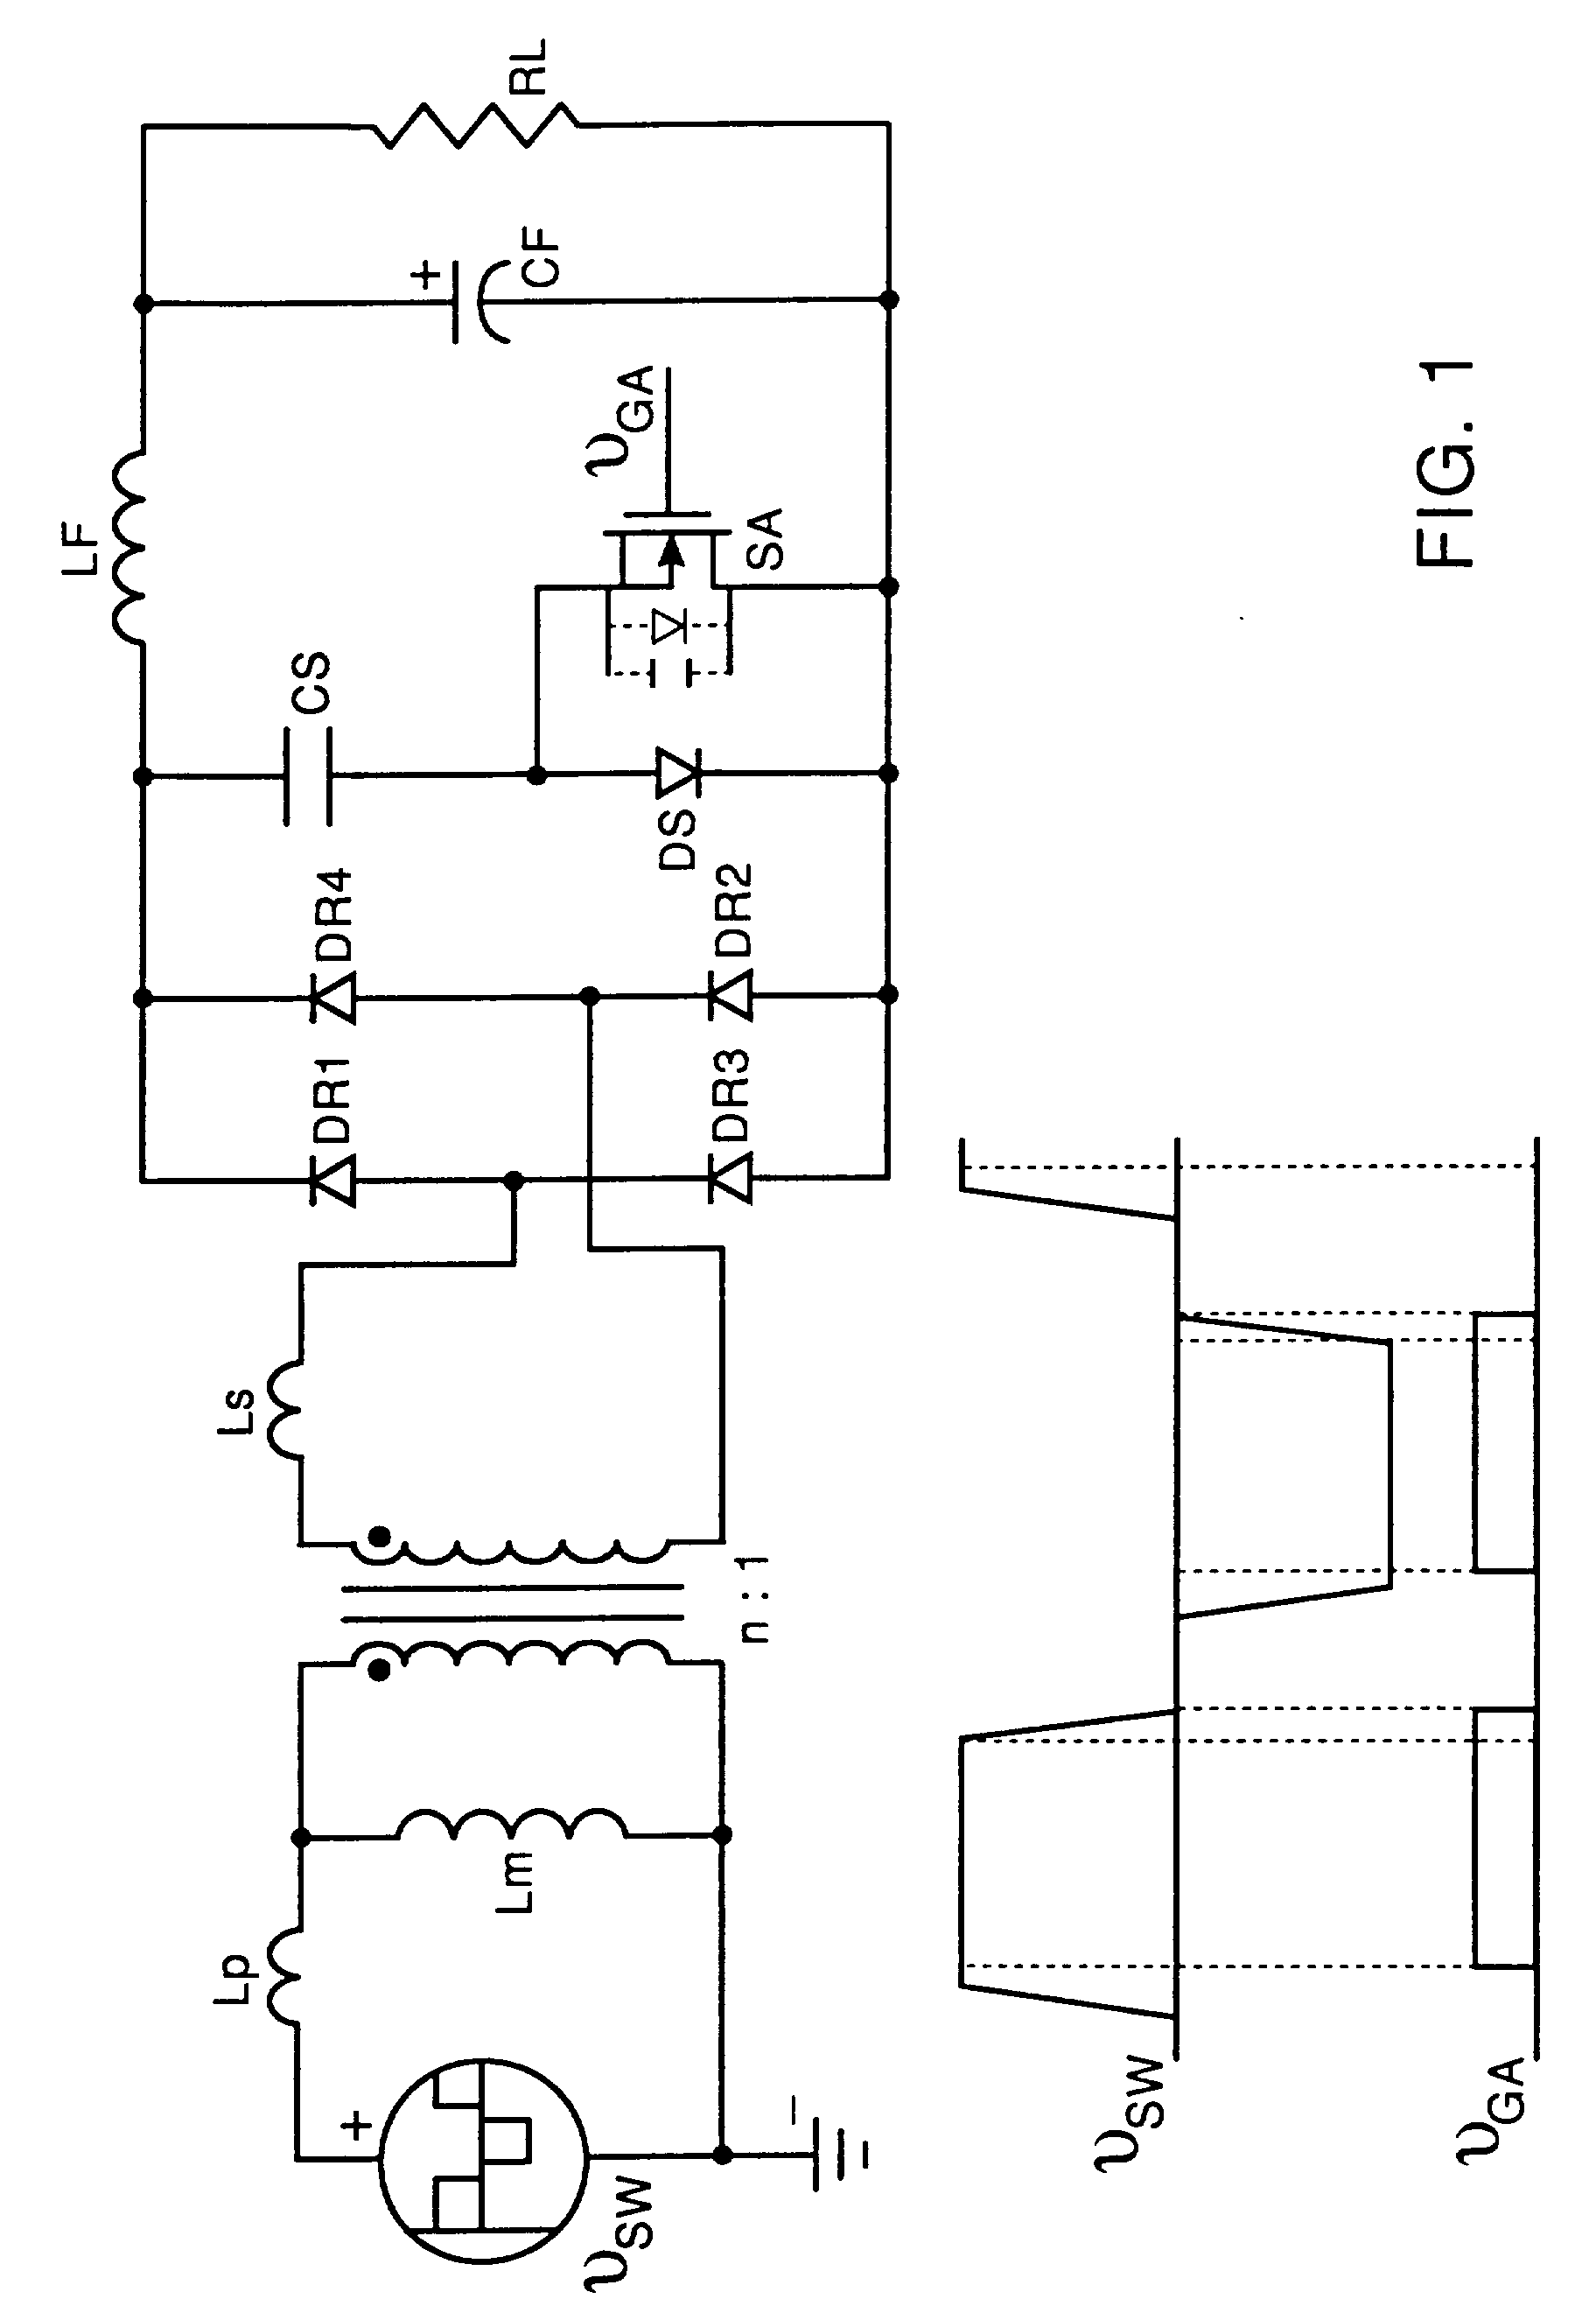 patent ep0614267b1 - lossless active snubber for half-bridge output rectifiers